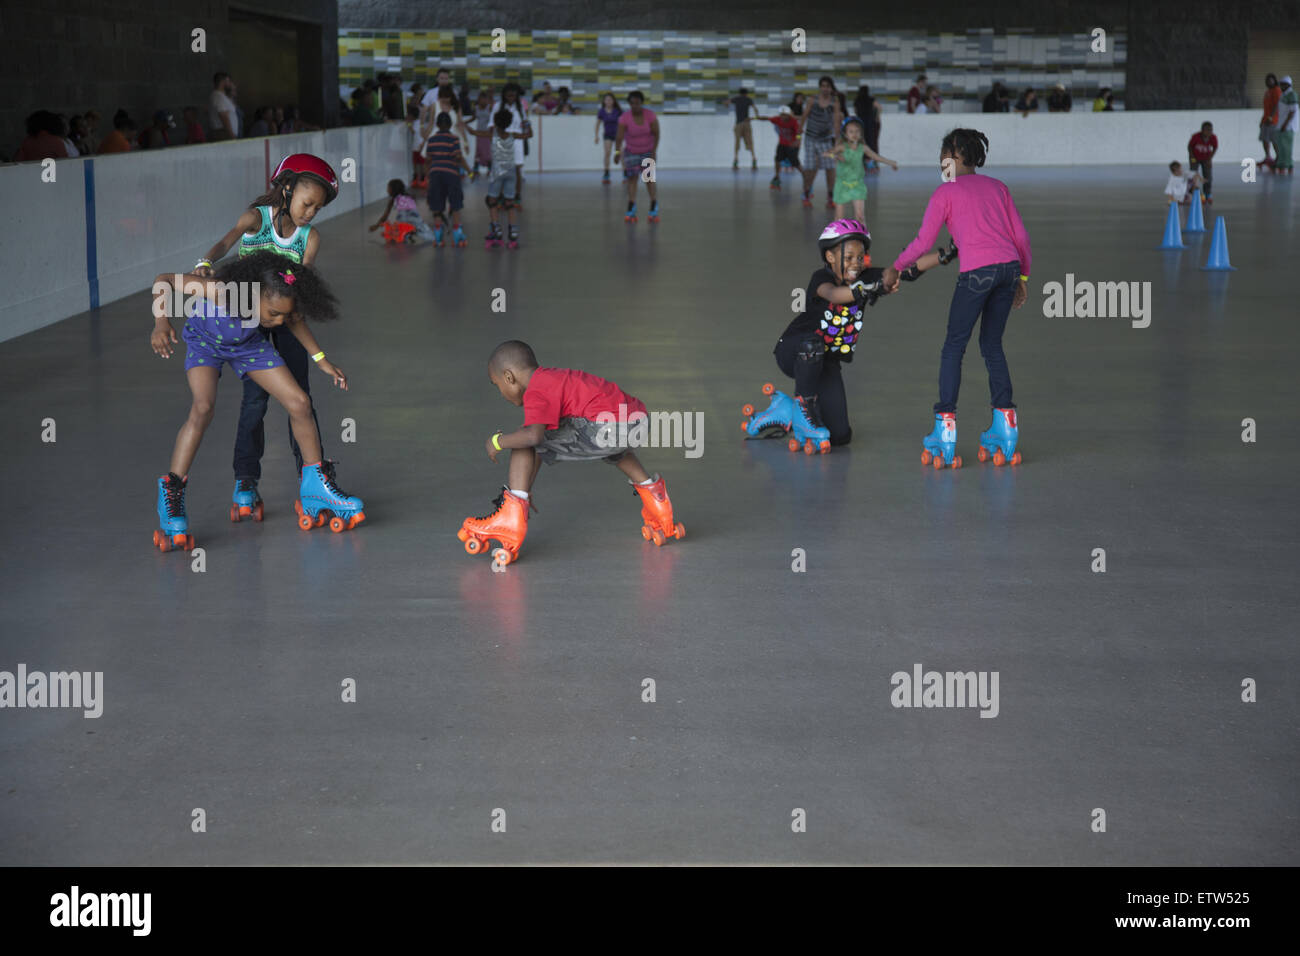 Children learn to roller skate at the Lakeside Rink in Prospect Park, Brooklyn, New York. - Stock Image